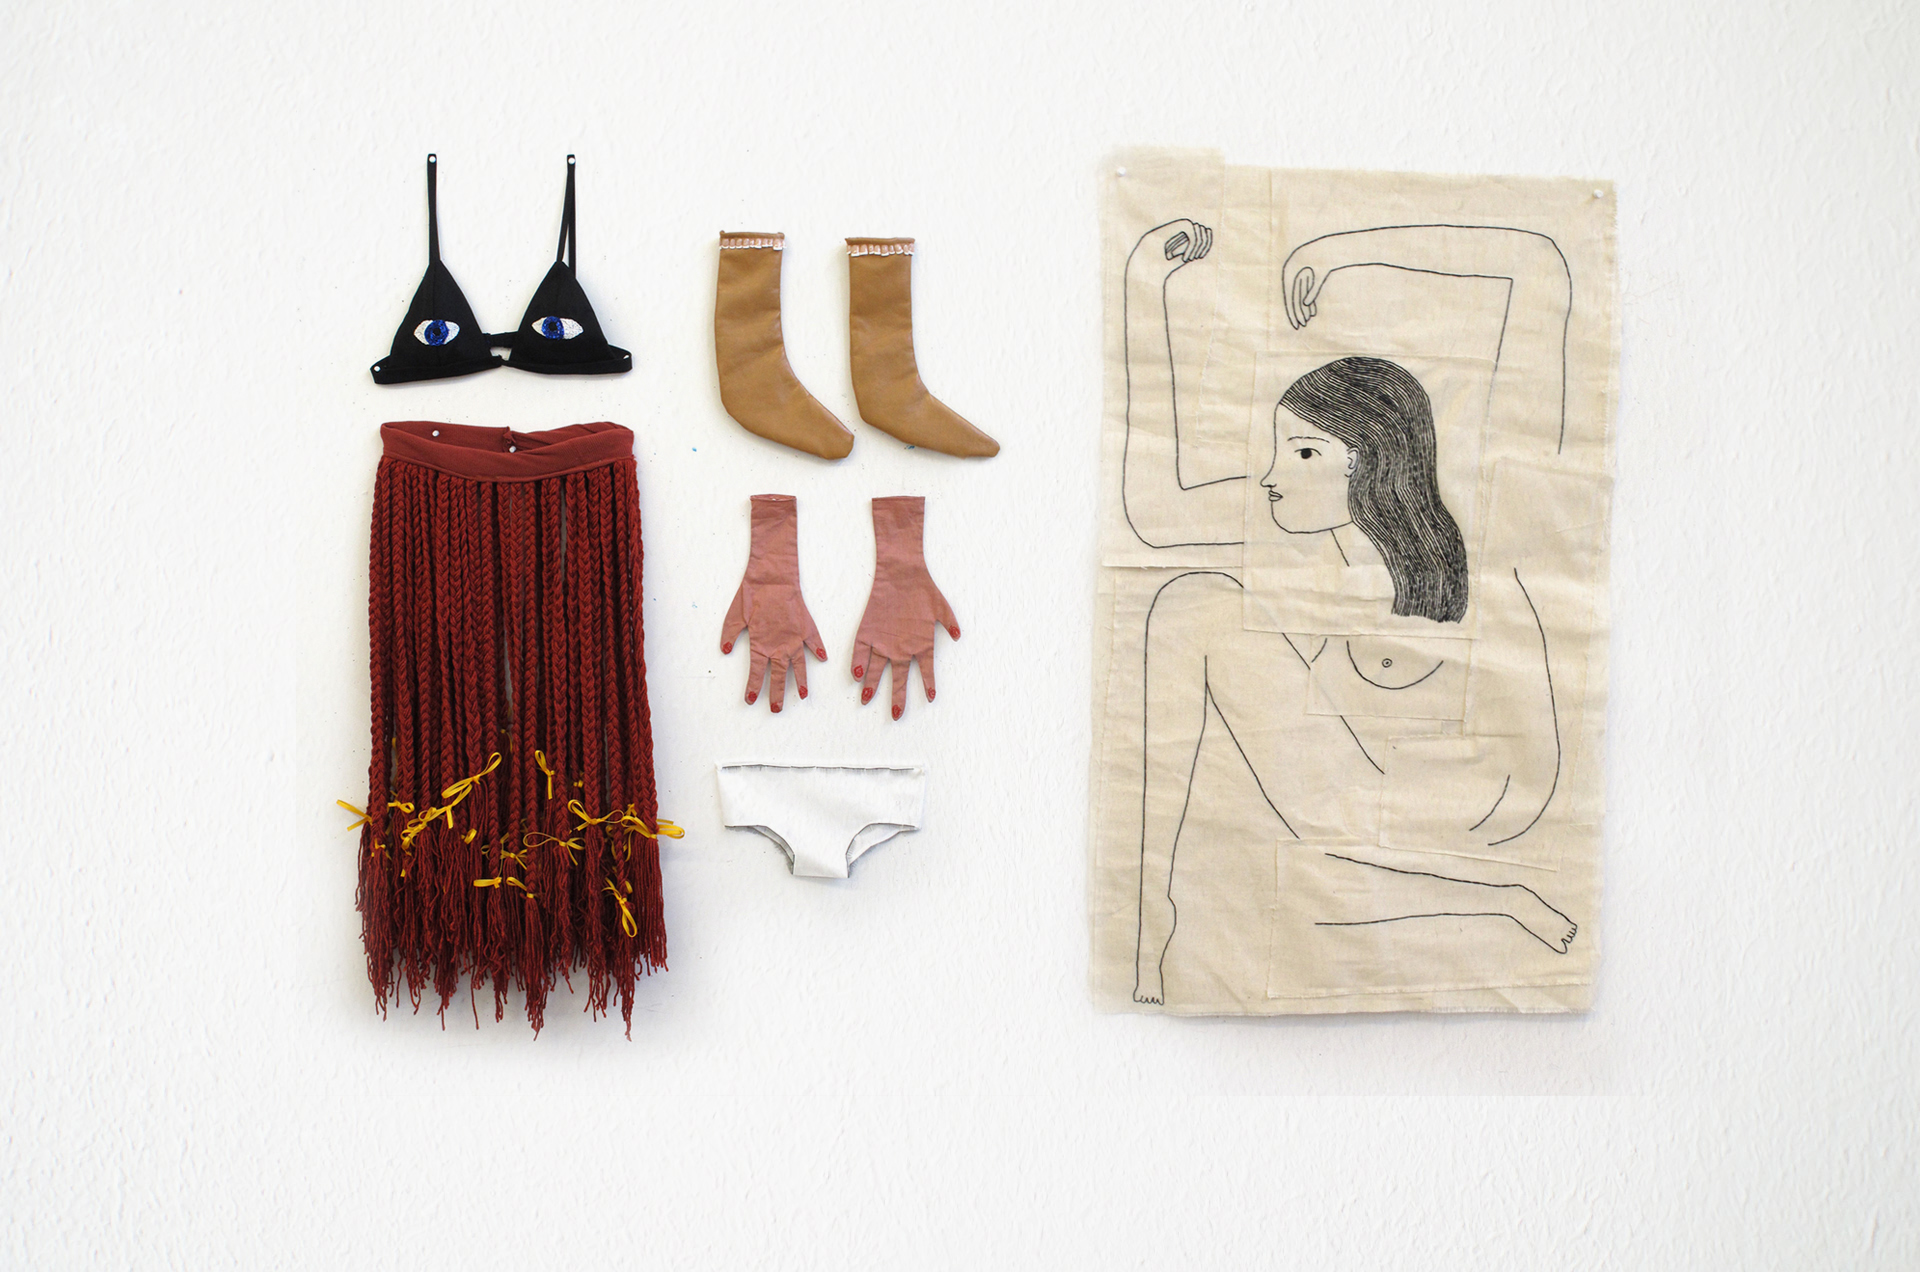 """Chelsea O'bryne    Identity Suit/I looked inside myself and saw what wasn't there, 2016   mixed textile media, glue, fake nails, fake eyelashes and beads, embroidery on canvas  10.2"""" x 11.3"""" (bra); 7.5"""" x 8.7"""" (underwear); 11.4"""" x 23.6"""" (skirt); 7.3"""" x 10.2"""" (sock, each); 5""""x 9.6"""" (glove, each); 21"""" x 32"""" (canvas)"""